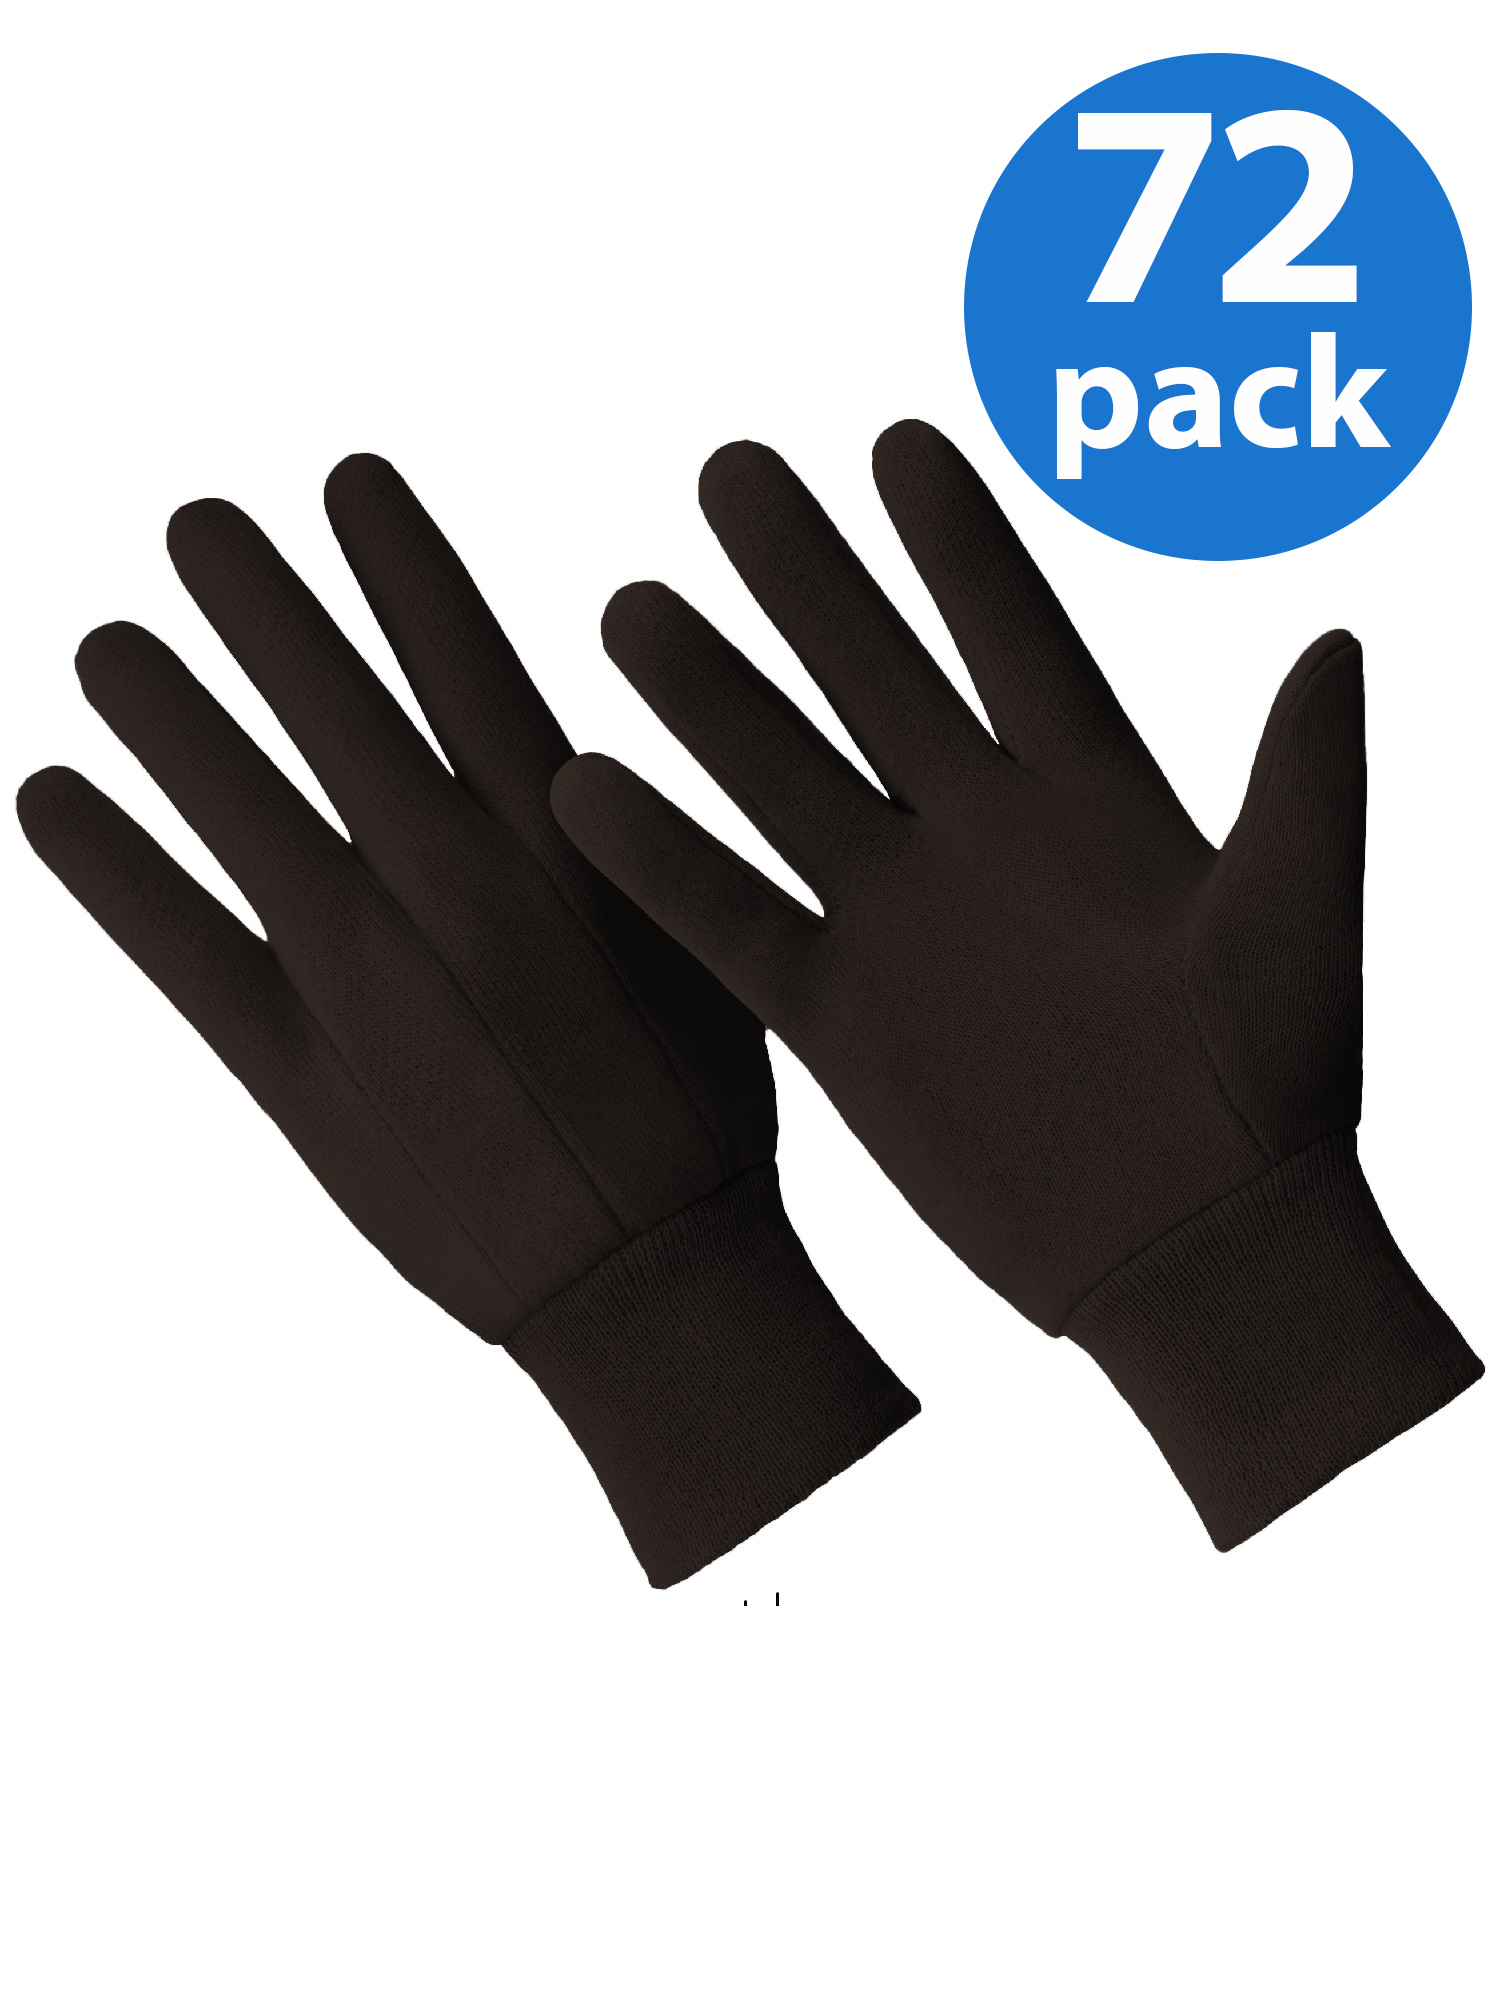 CT7000-L-72PK, 72 Pair Value Pack, Poly/Cotton Blend Brown Jersey Glove